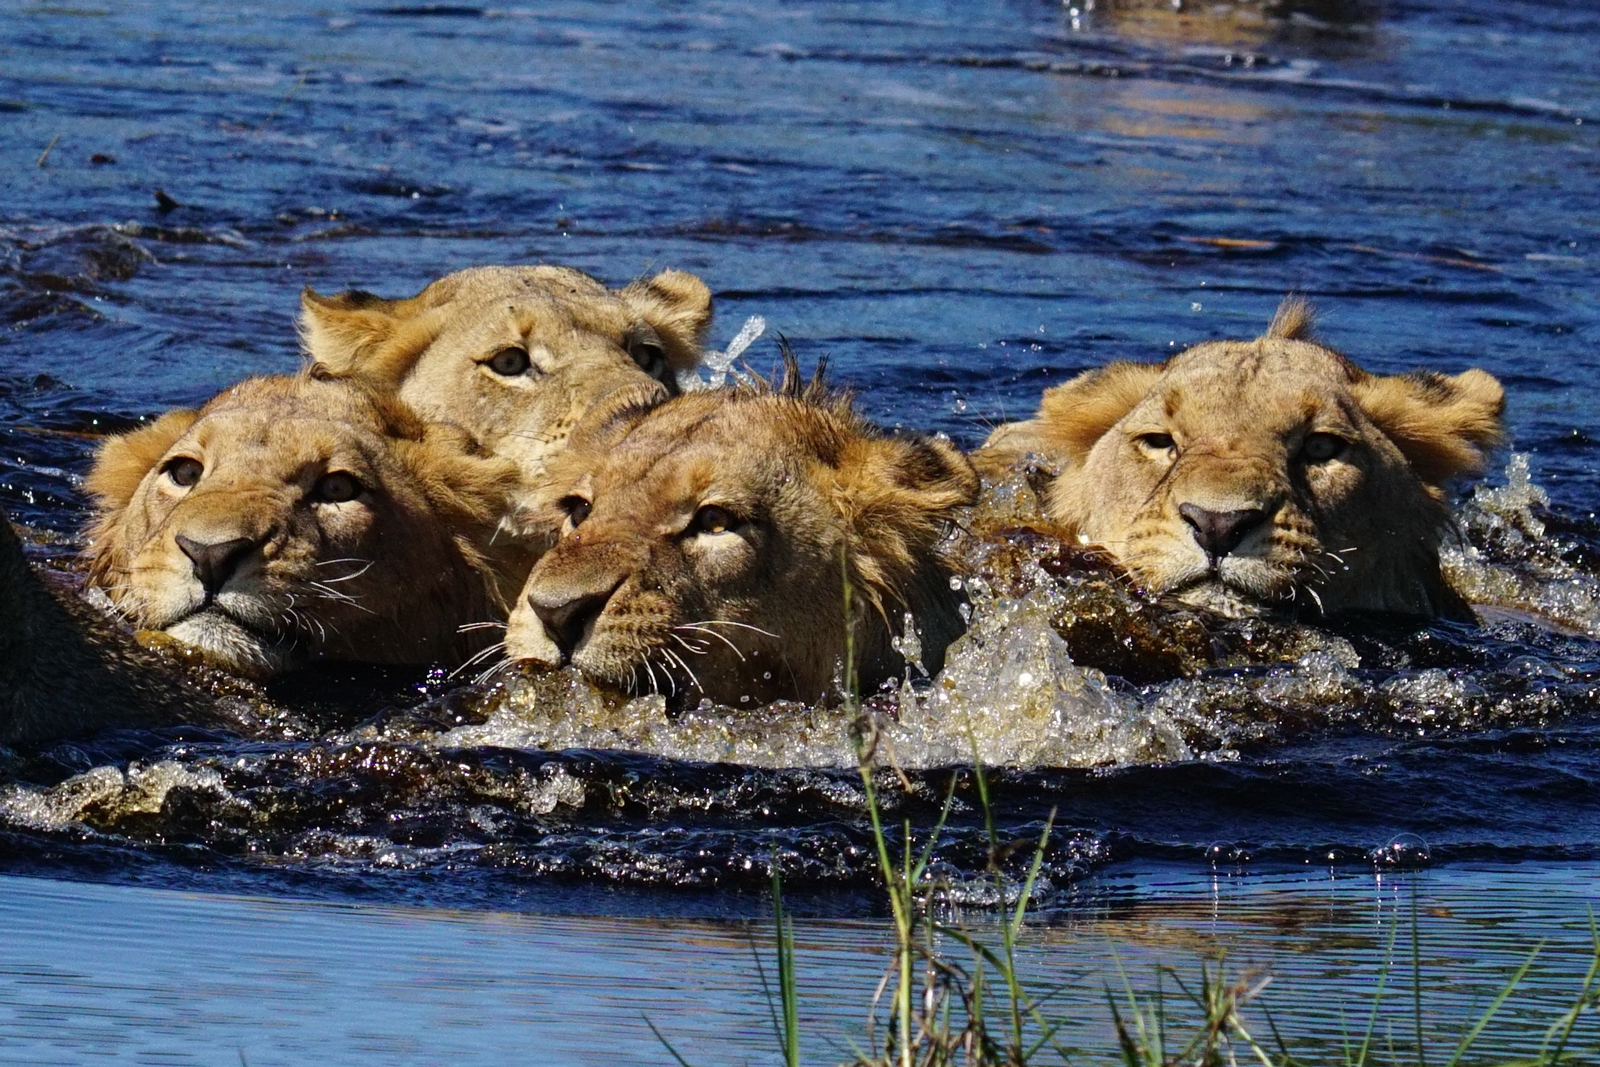 Sswimming lions in Duba Plains